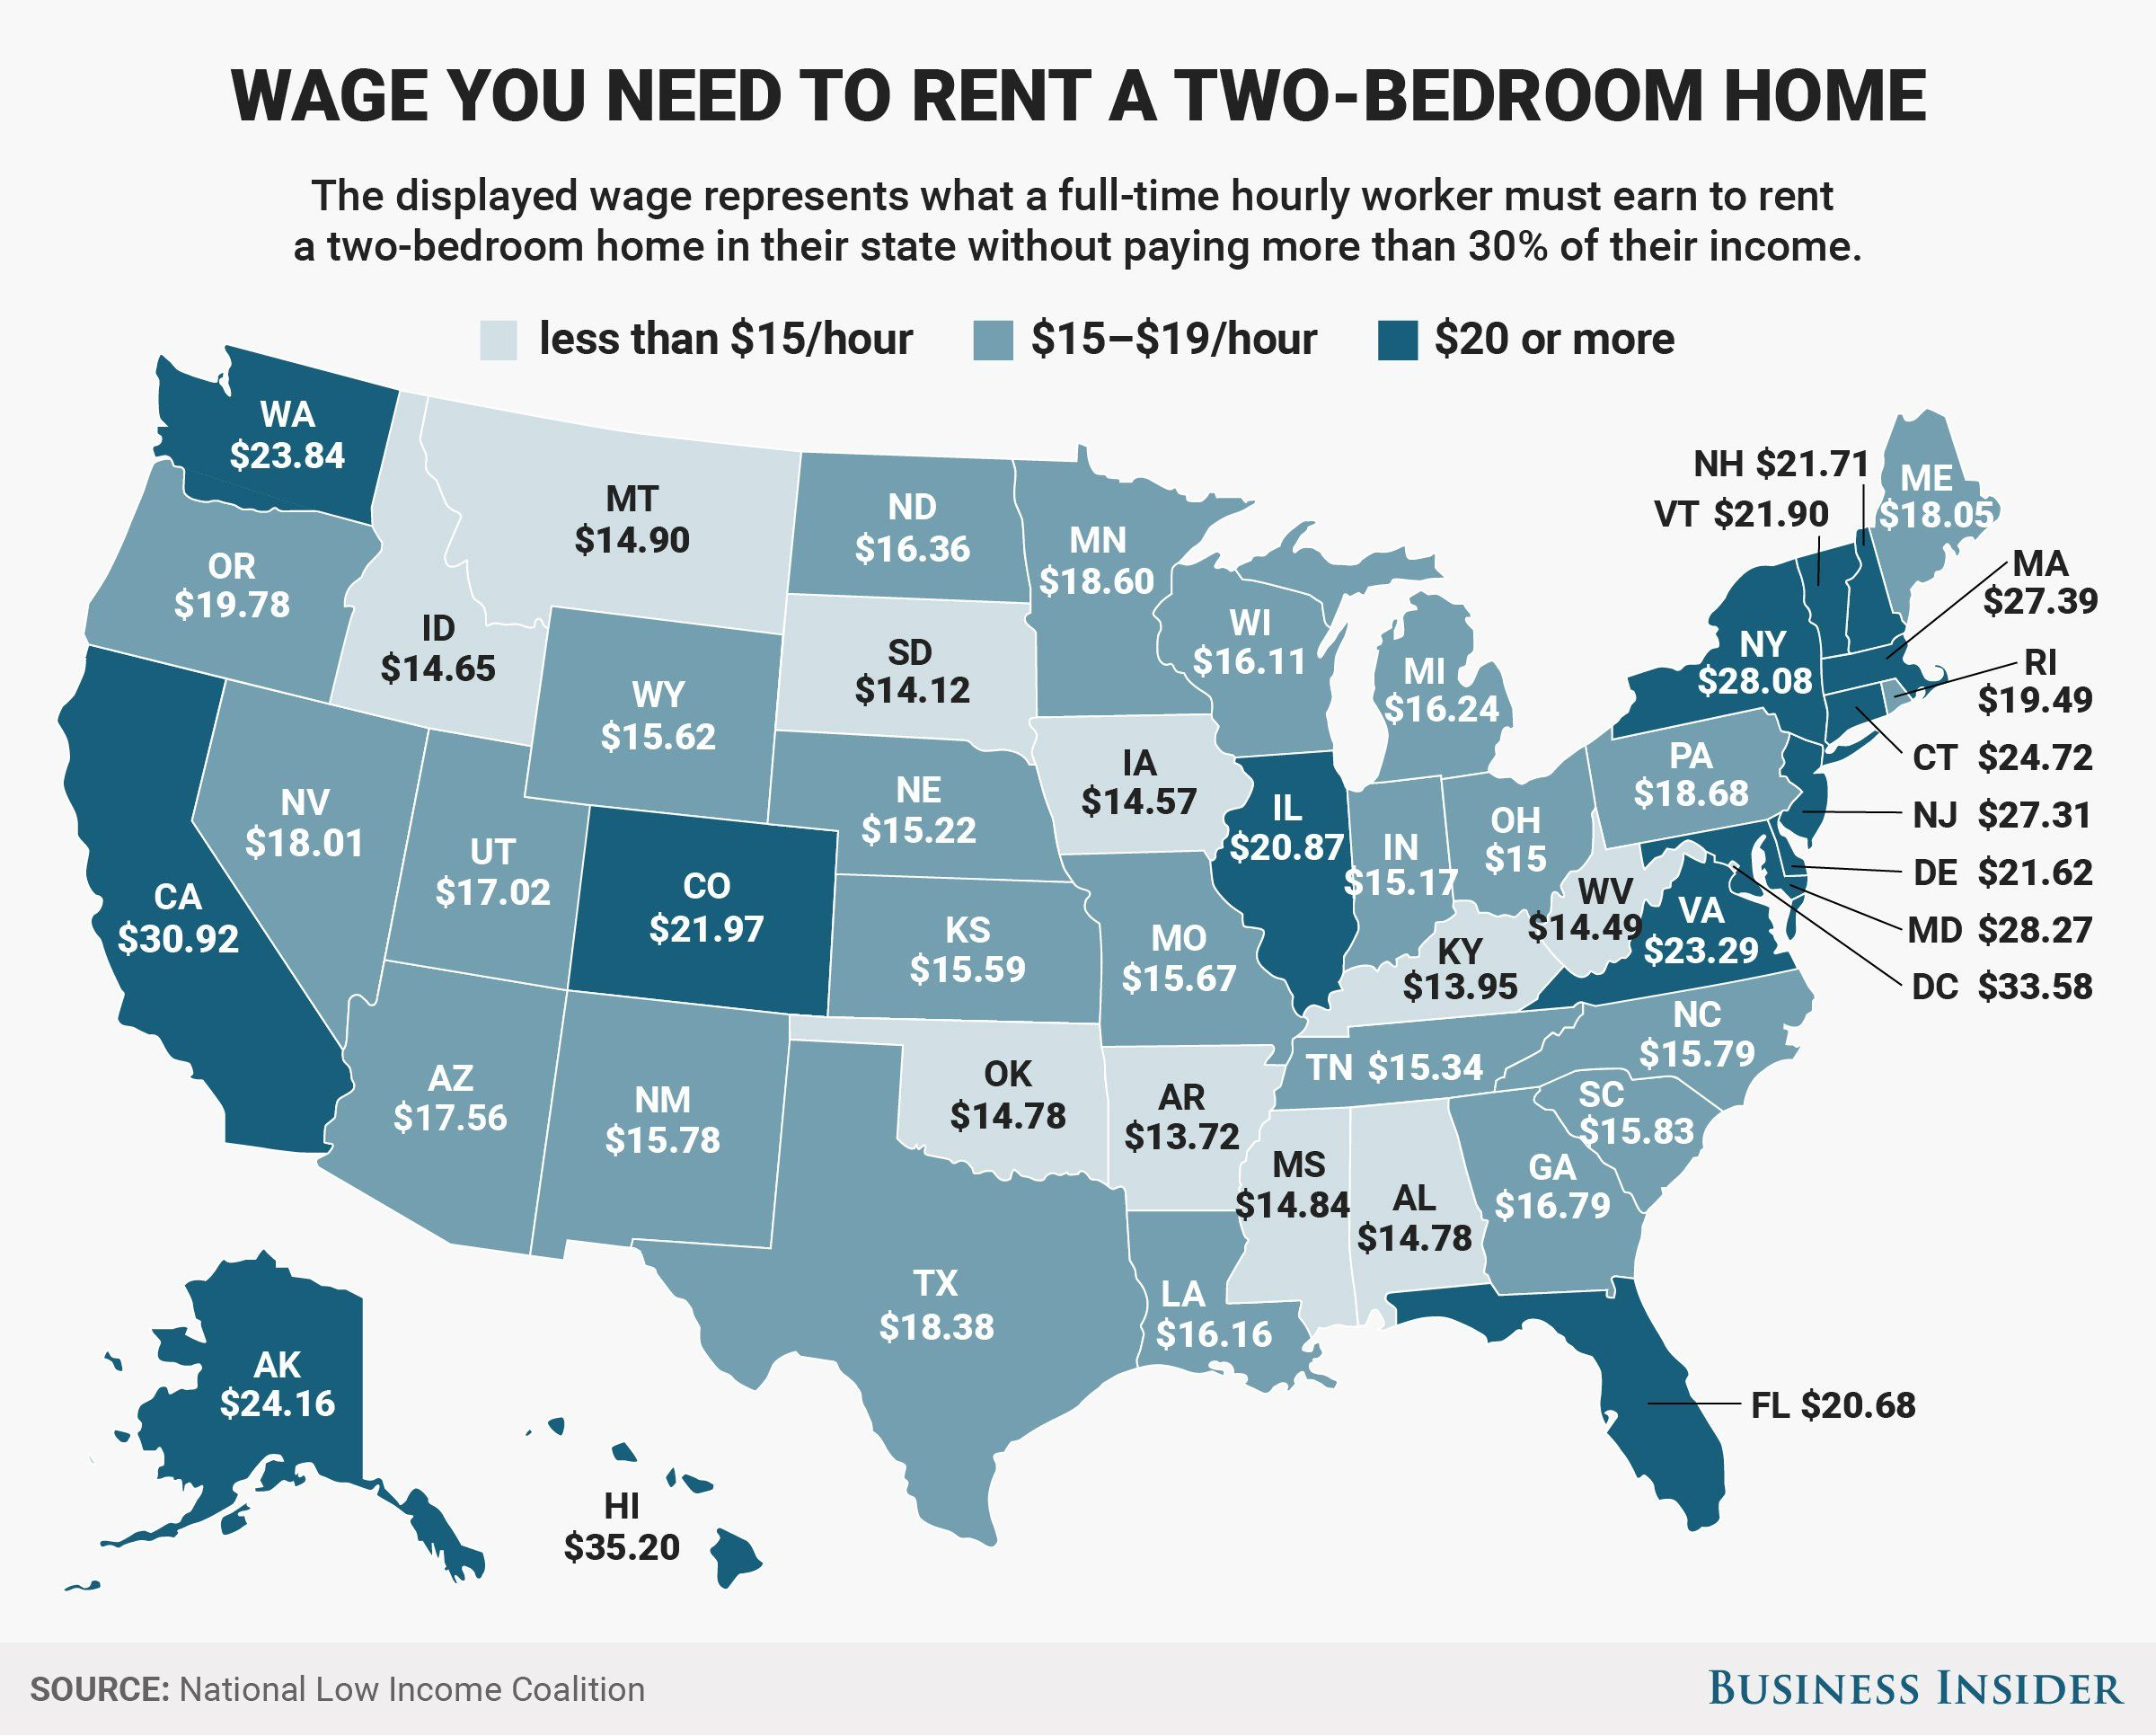 The hourly wage needed to rent a two bedroom home in every state. The hourly wage needed to rent a two bedroom home in every state